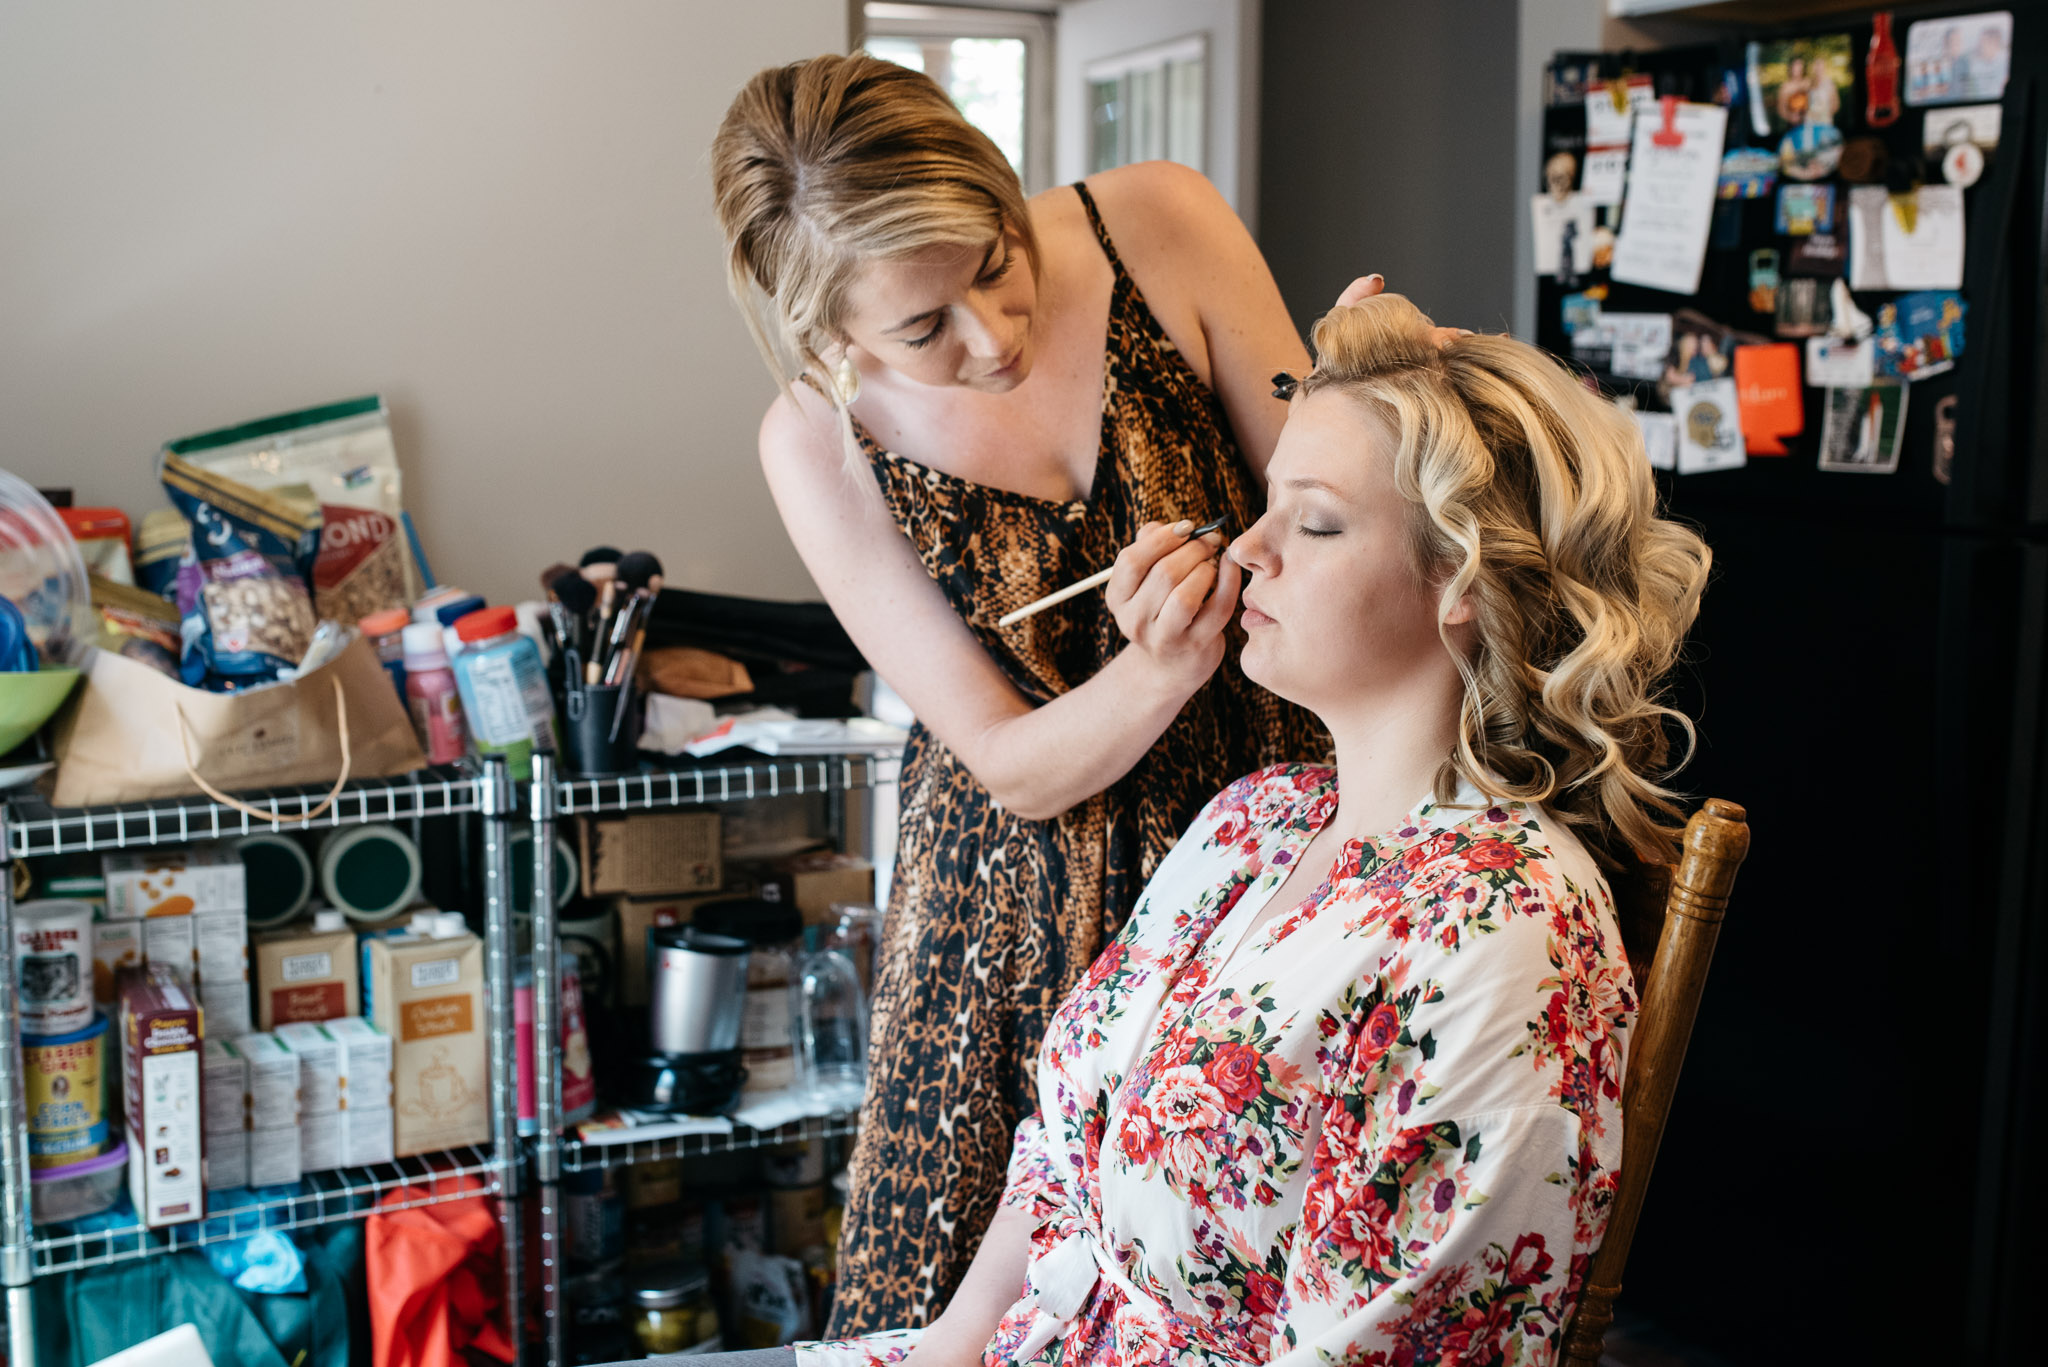 <alt> pittsburgh wedding photographer, mariah fisher photography, bride getting ready <:alt>.jpg